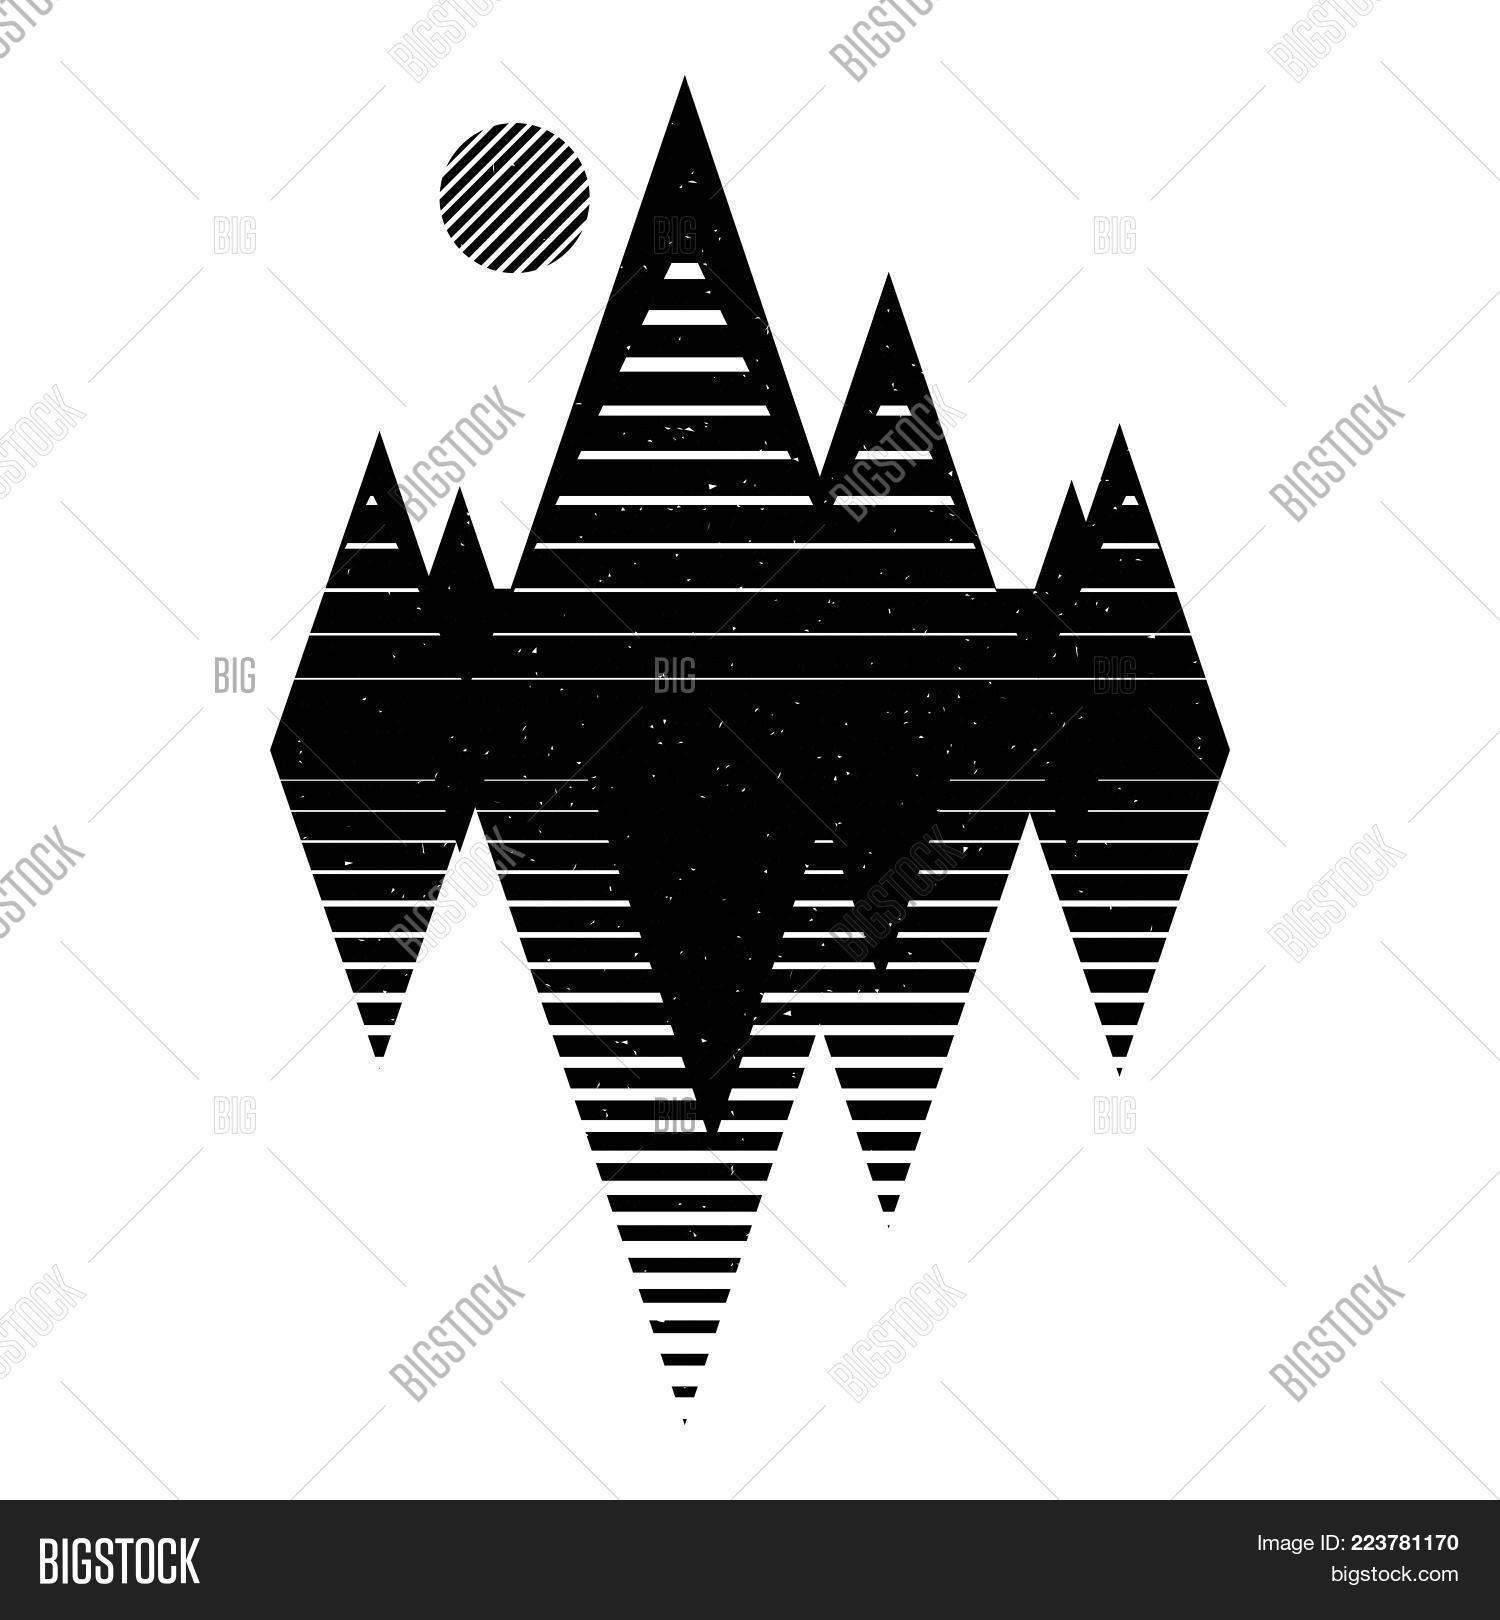 Geomerty Design Vector Photo Free Trial Bigstock